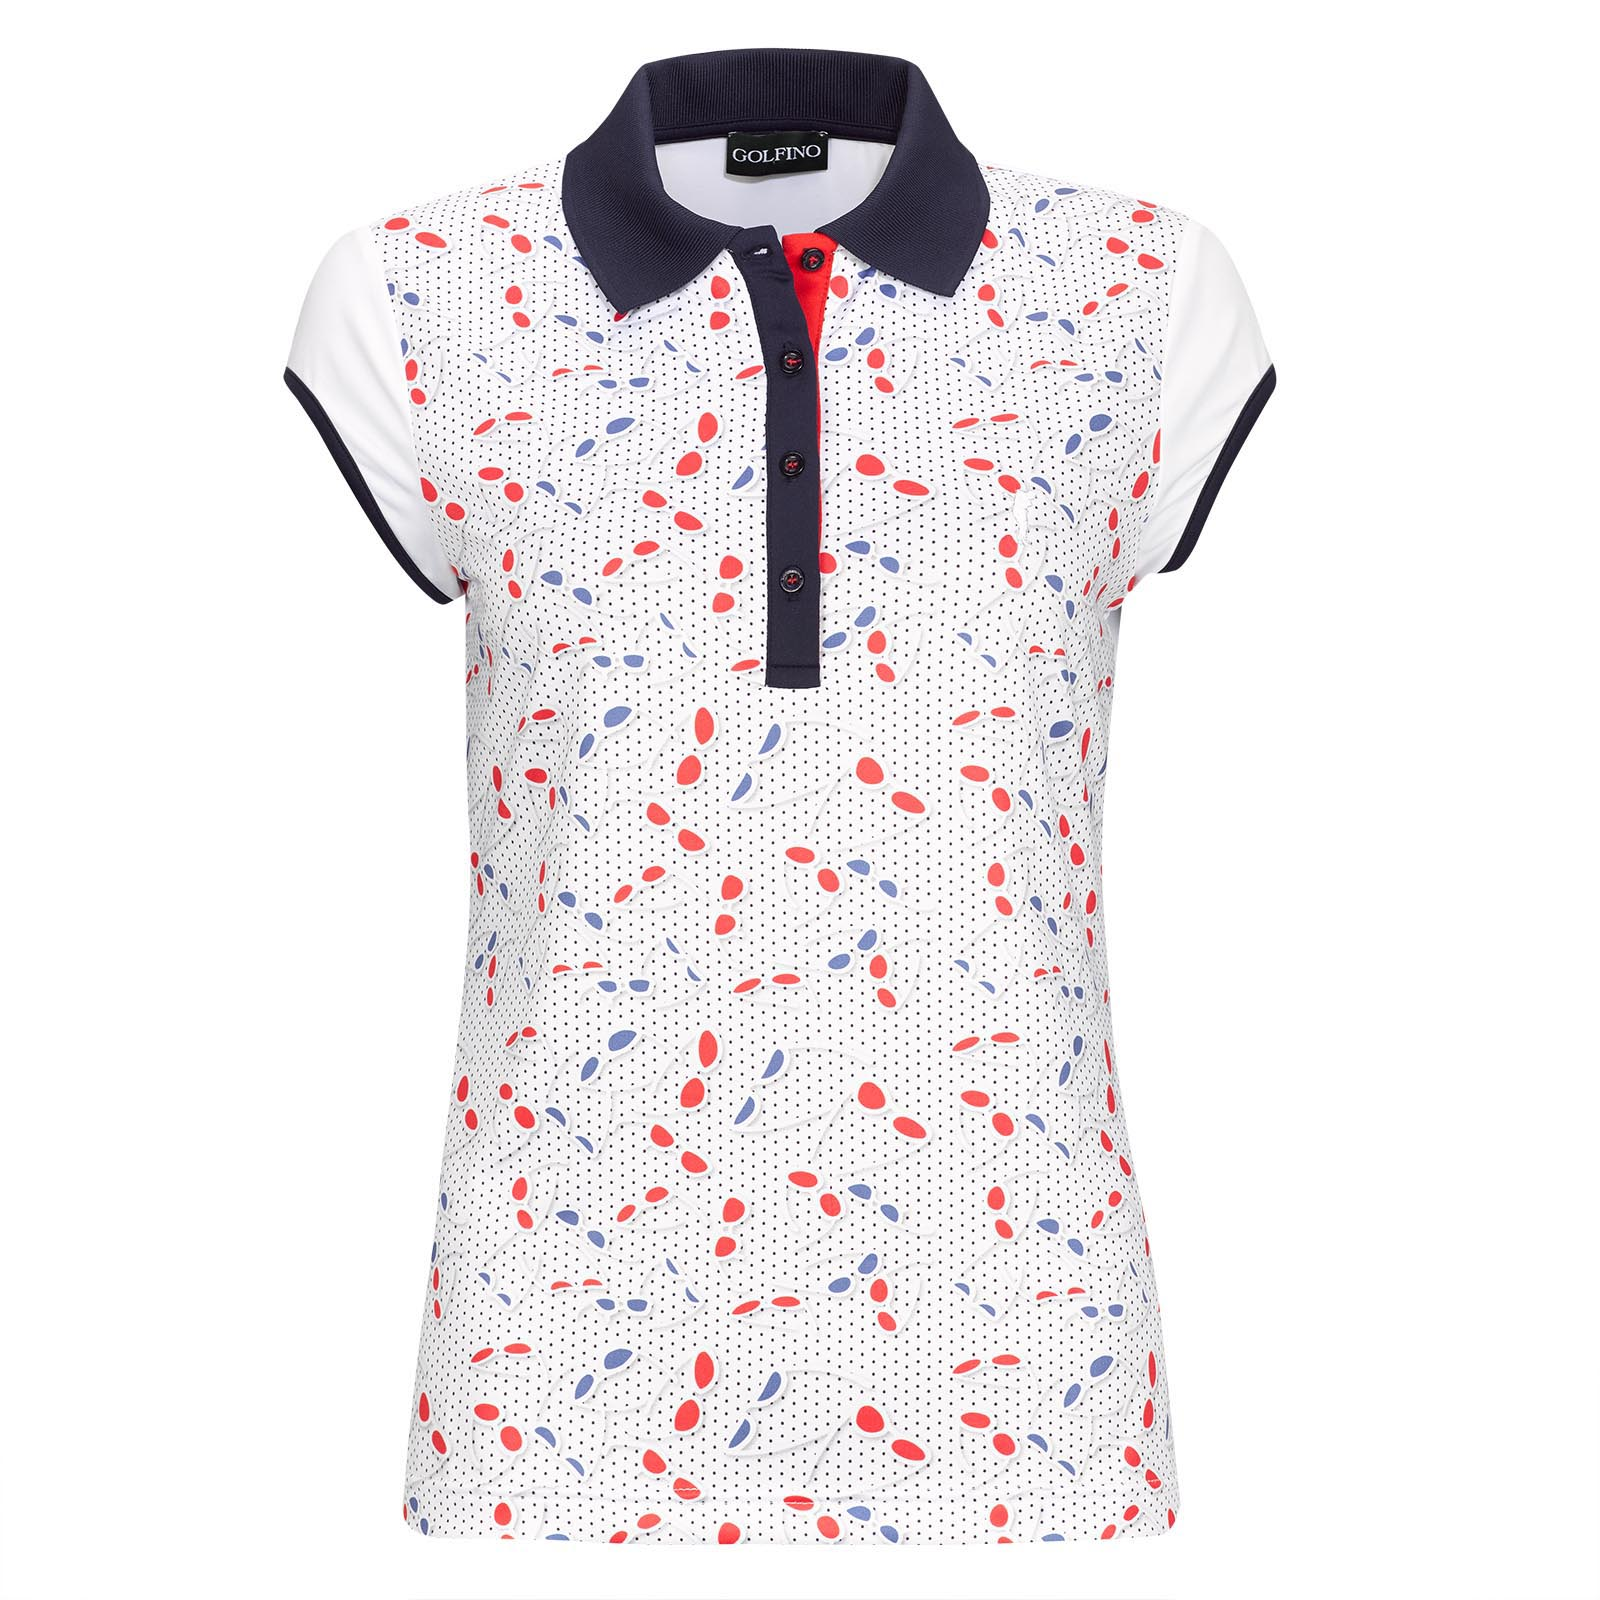 Ladies' Dry Performance golf polo with capped sleeve and stylish print